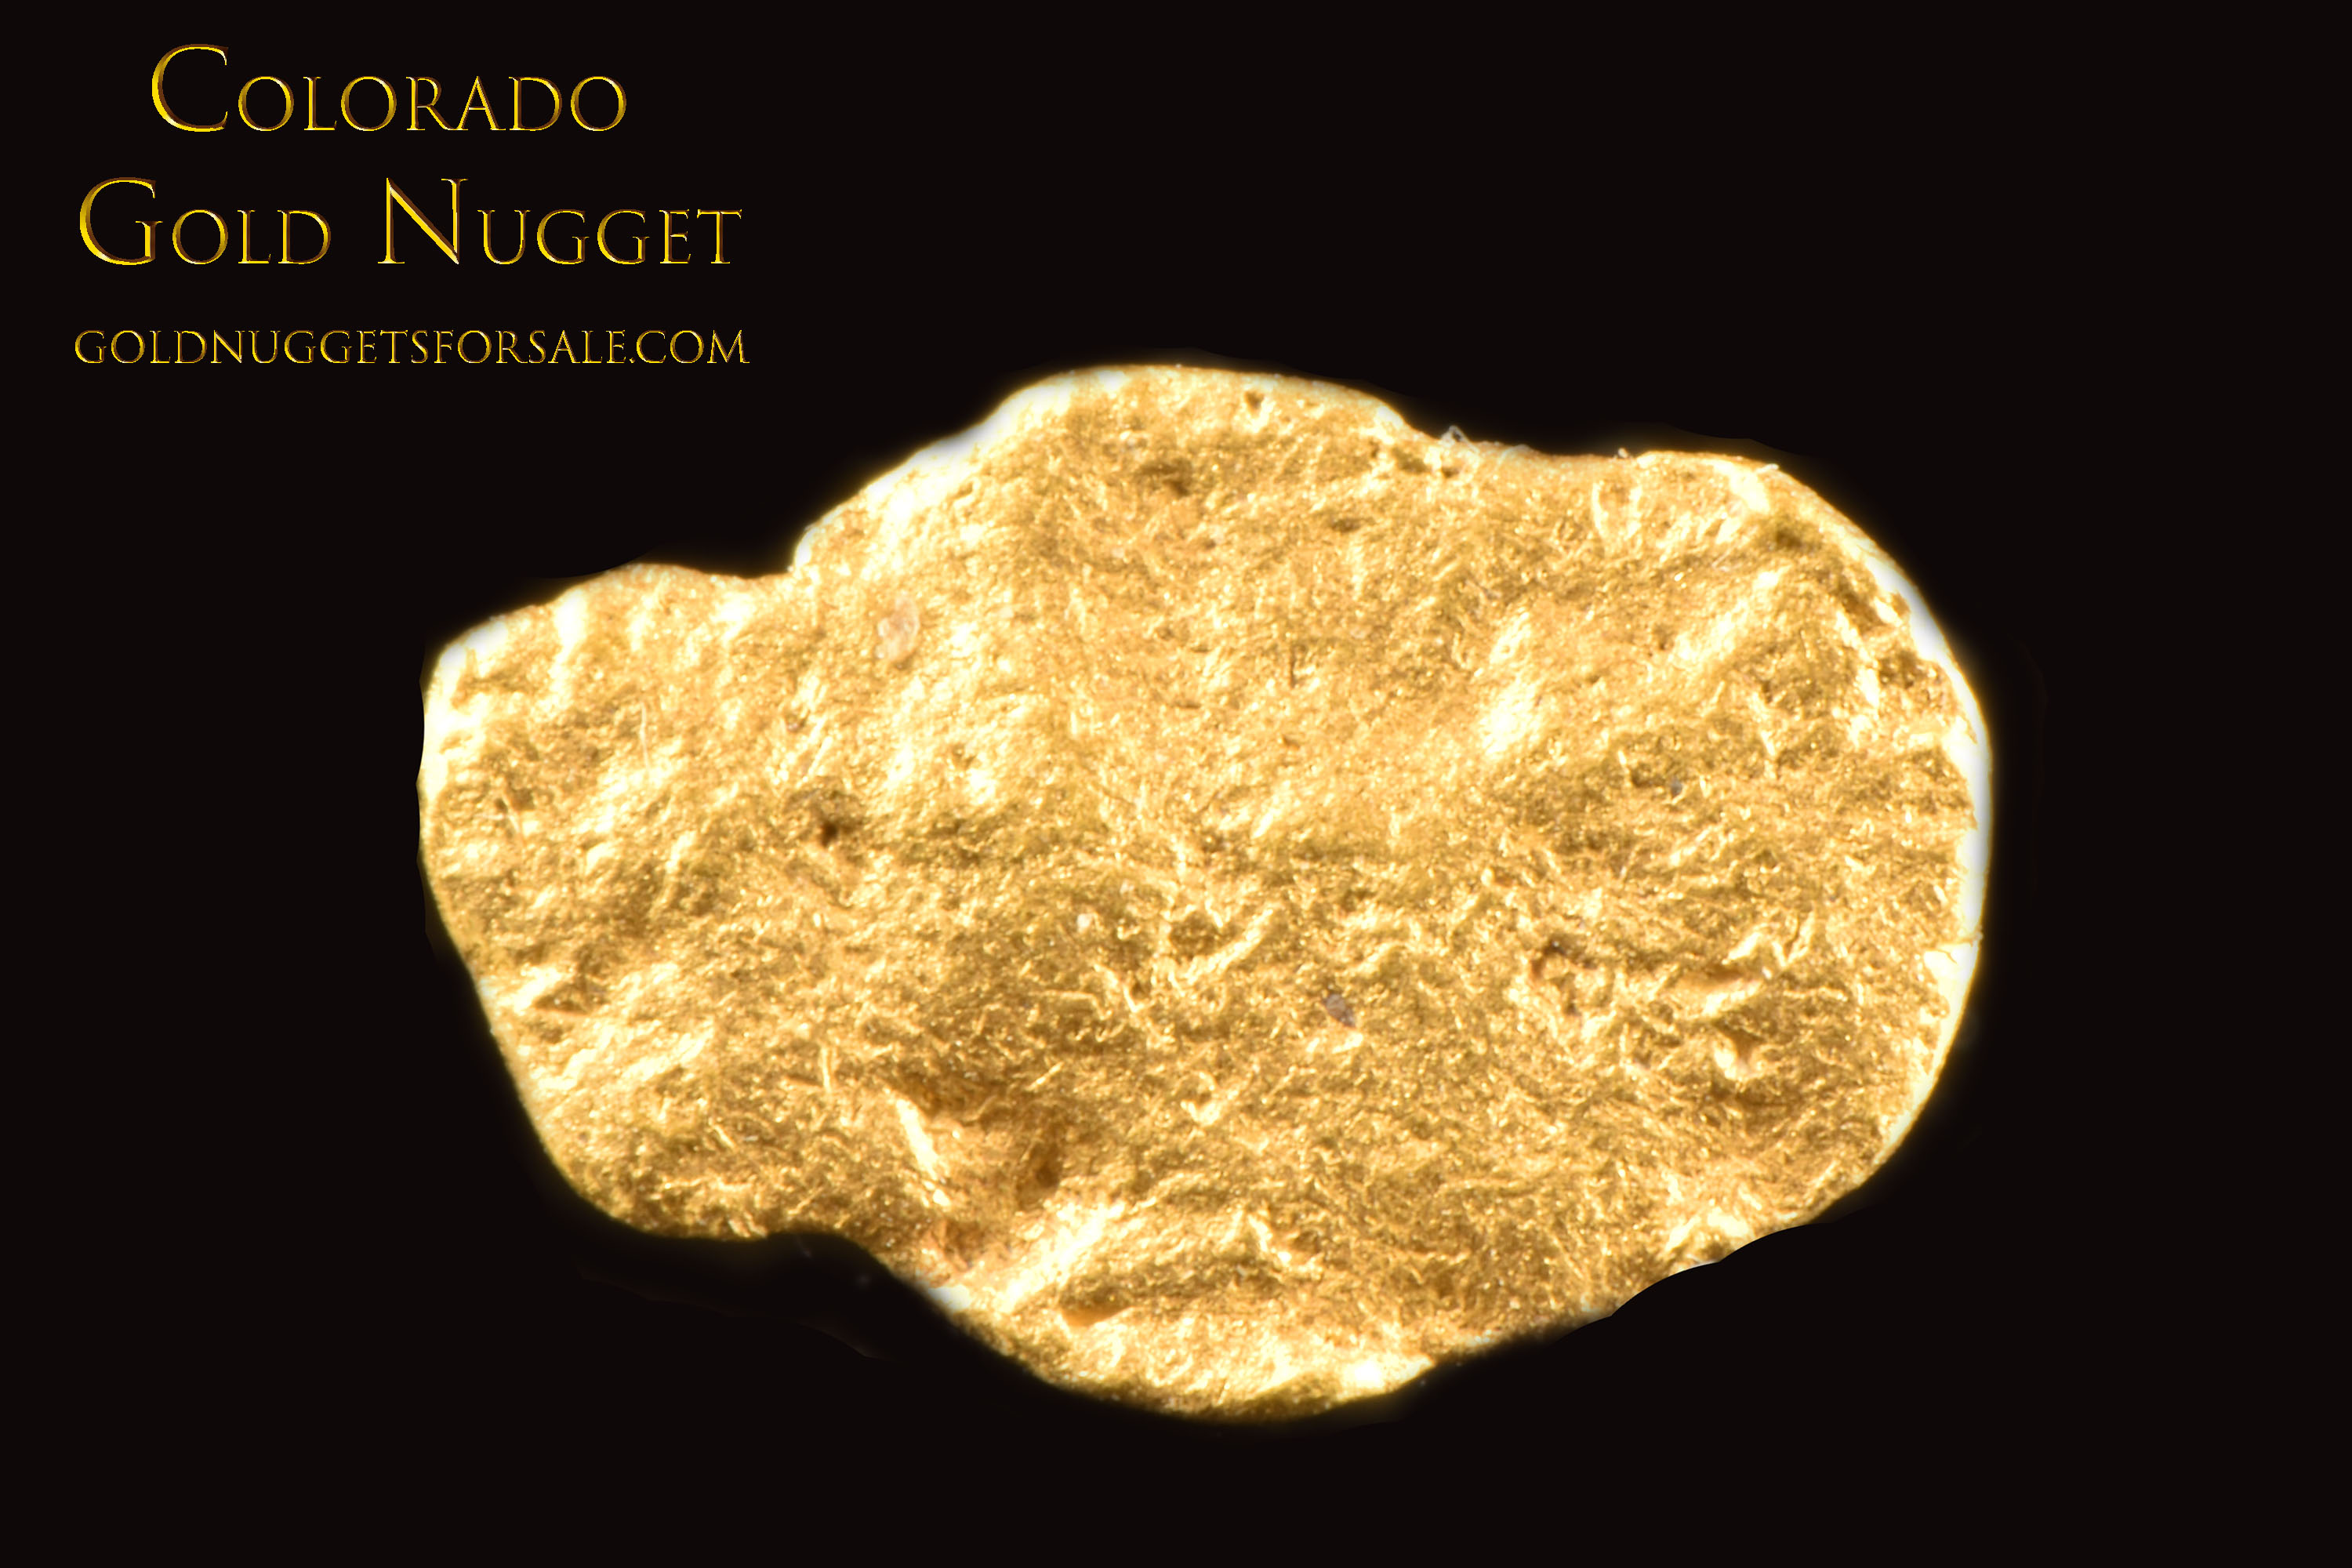 Thin and Shiny Jewelry Grade Colorado Gold Nugget